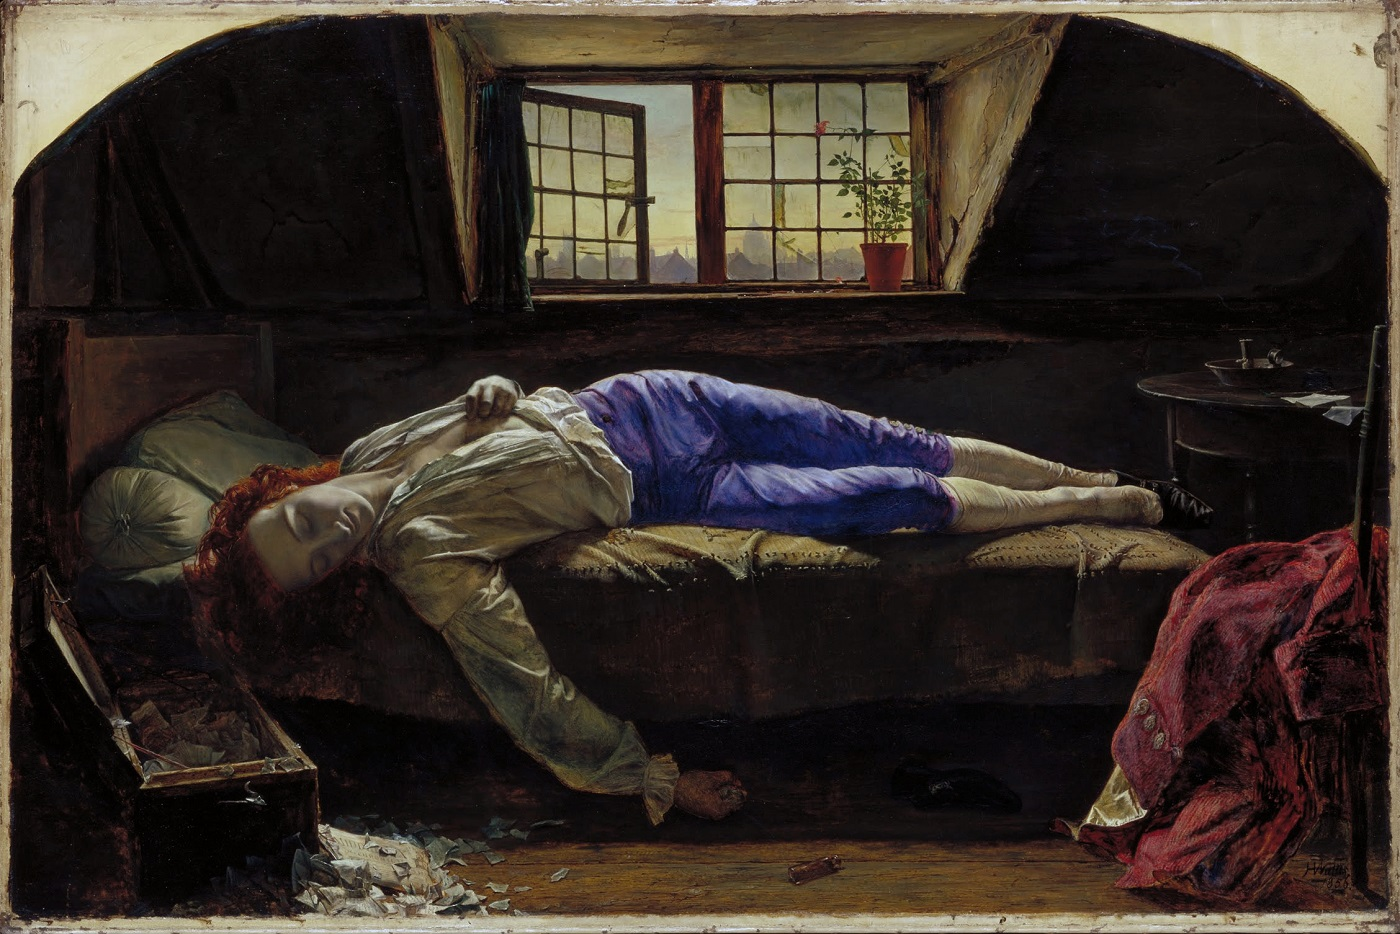 История Чаттертона, короля самоубийц Henry_Wallis_-_Chatterton_-_Google_Art_Project.jpg